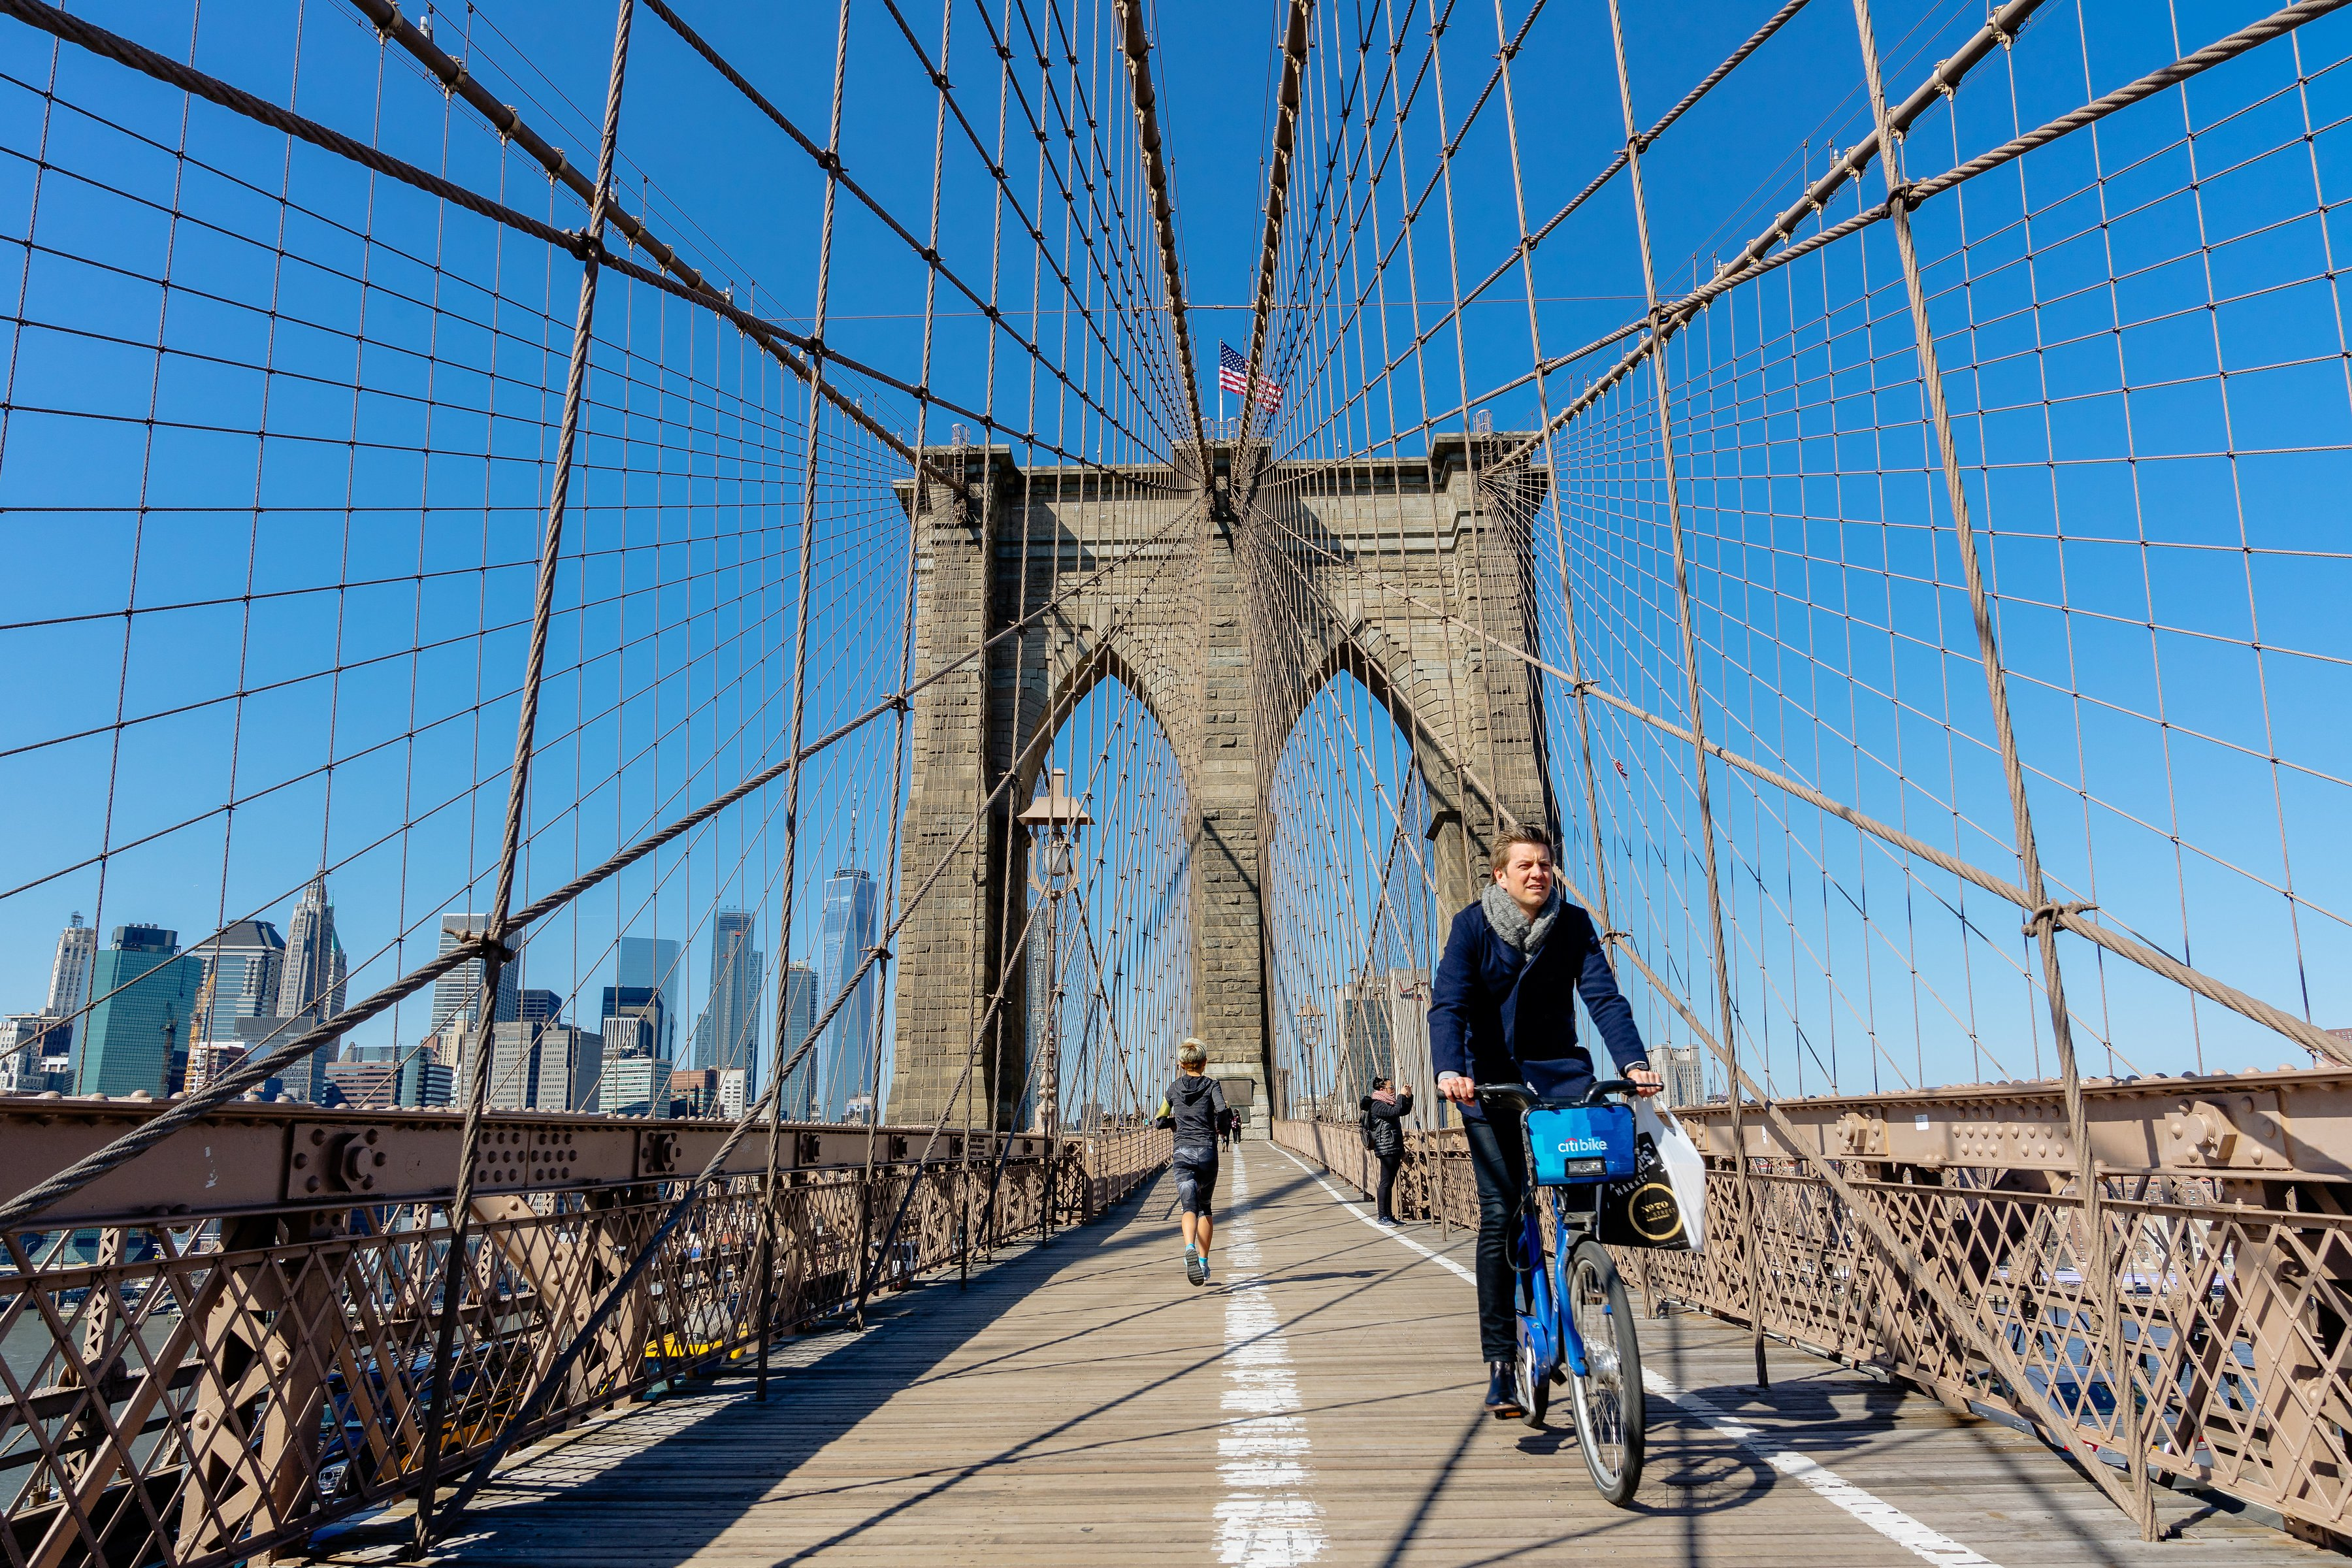 On Your Feet, Brooklyn: Walking Tours Featuring the City's Best Hidden Gems